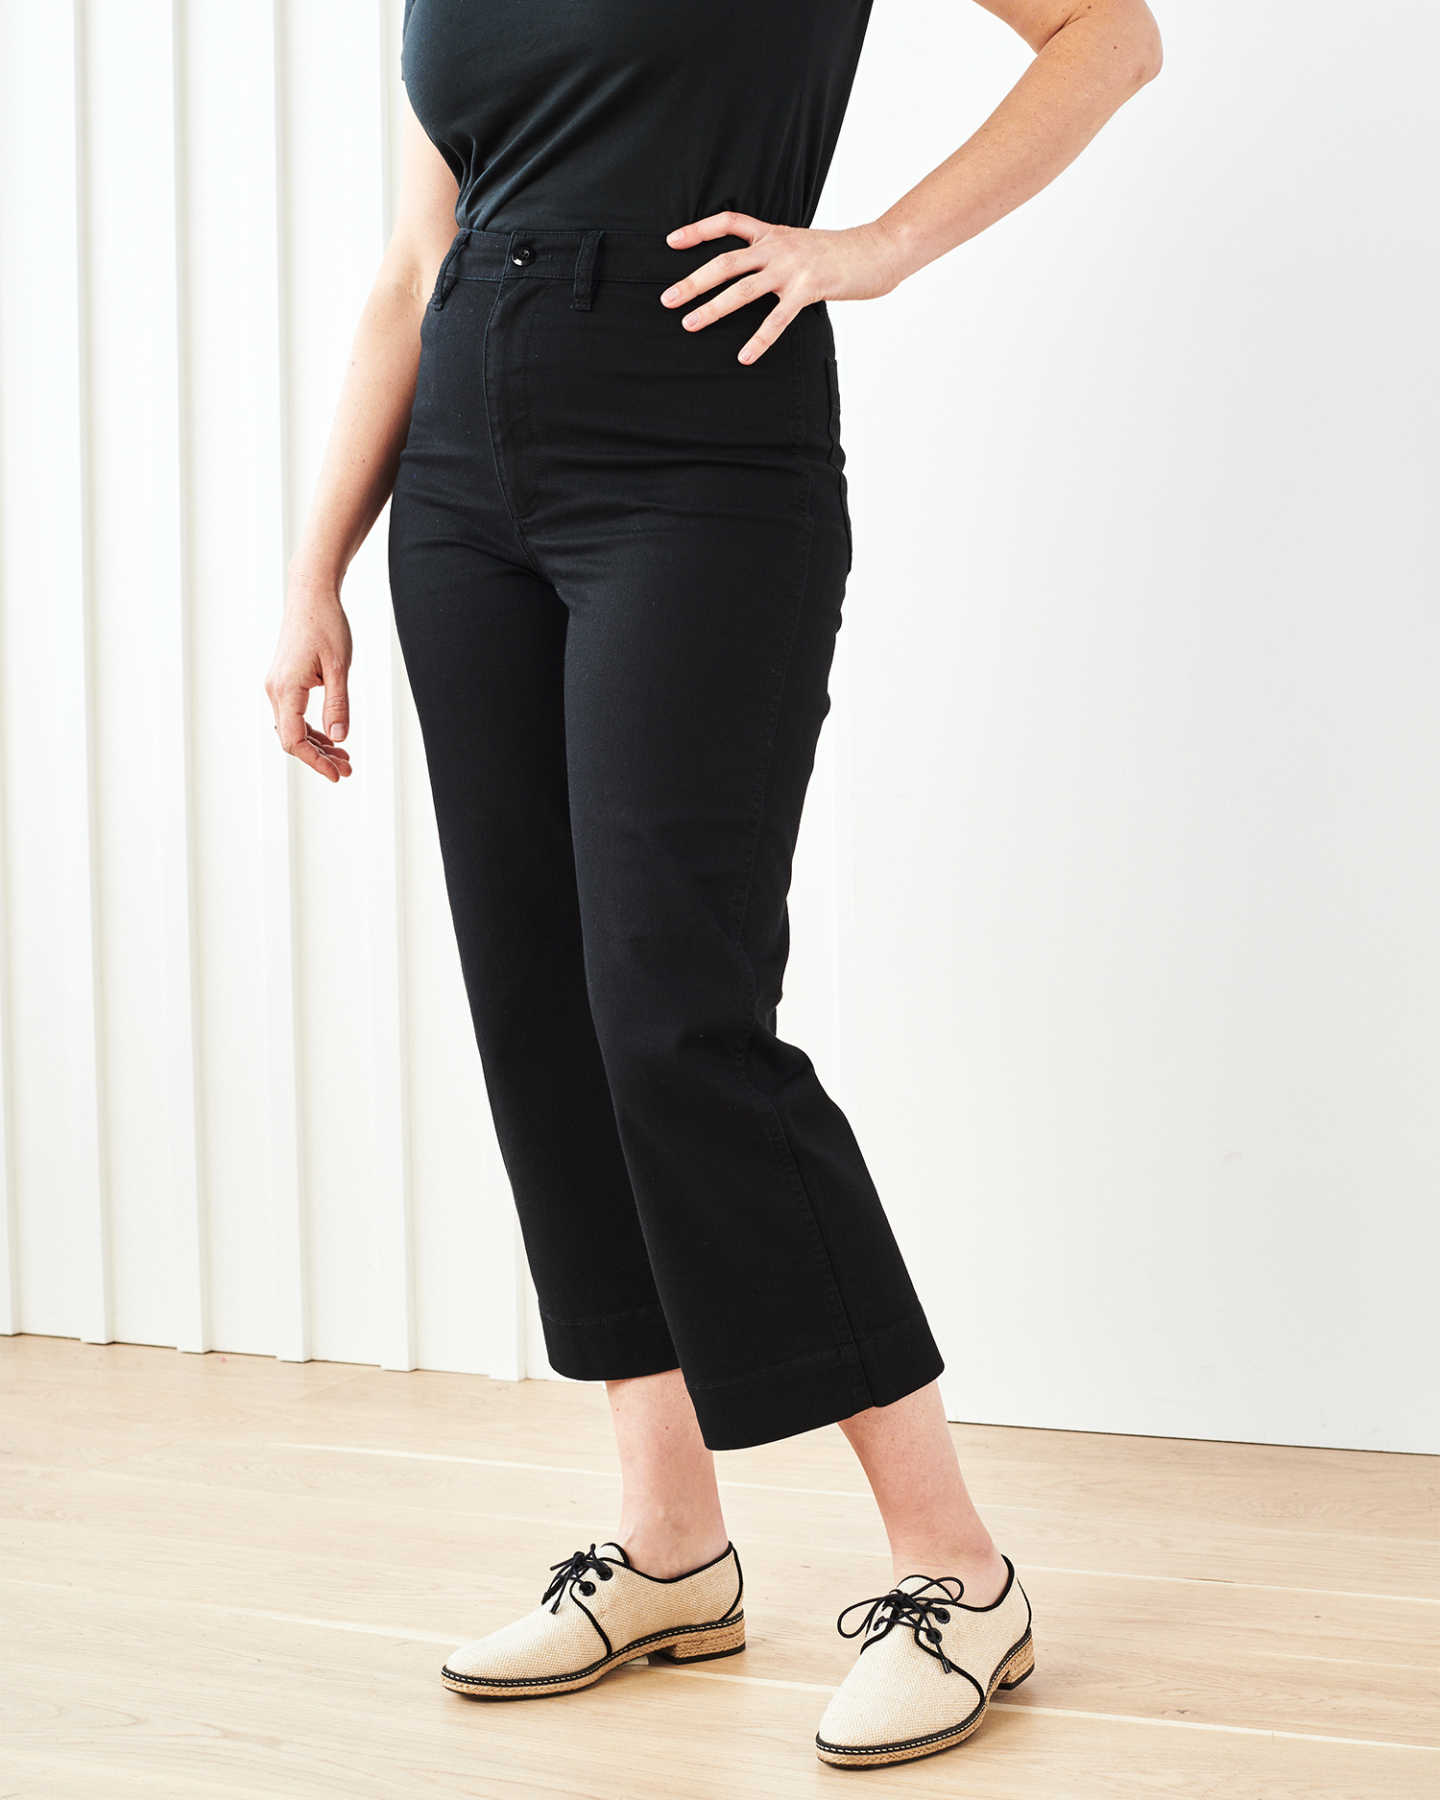 Stretch Cotton Twill Wide-Leg Crop Pant - Black - 5 - Thumbnail